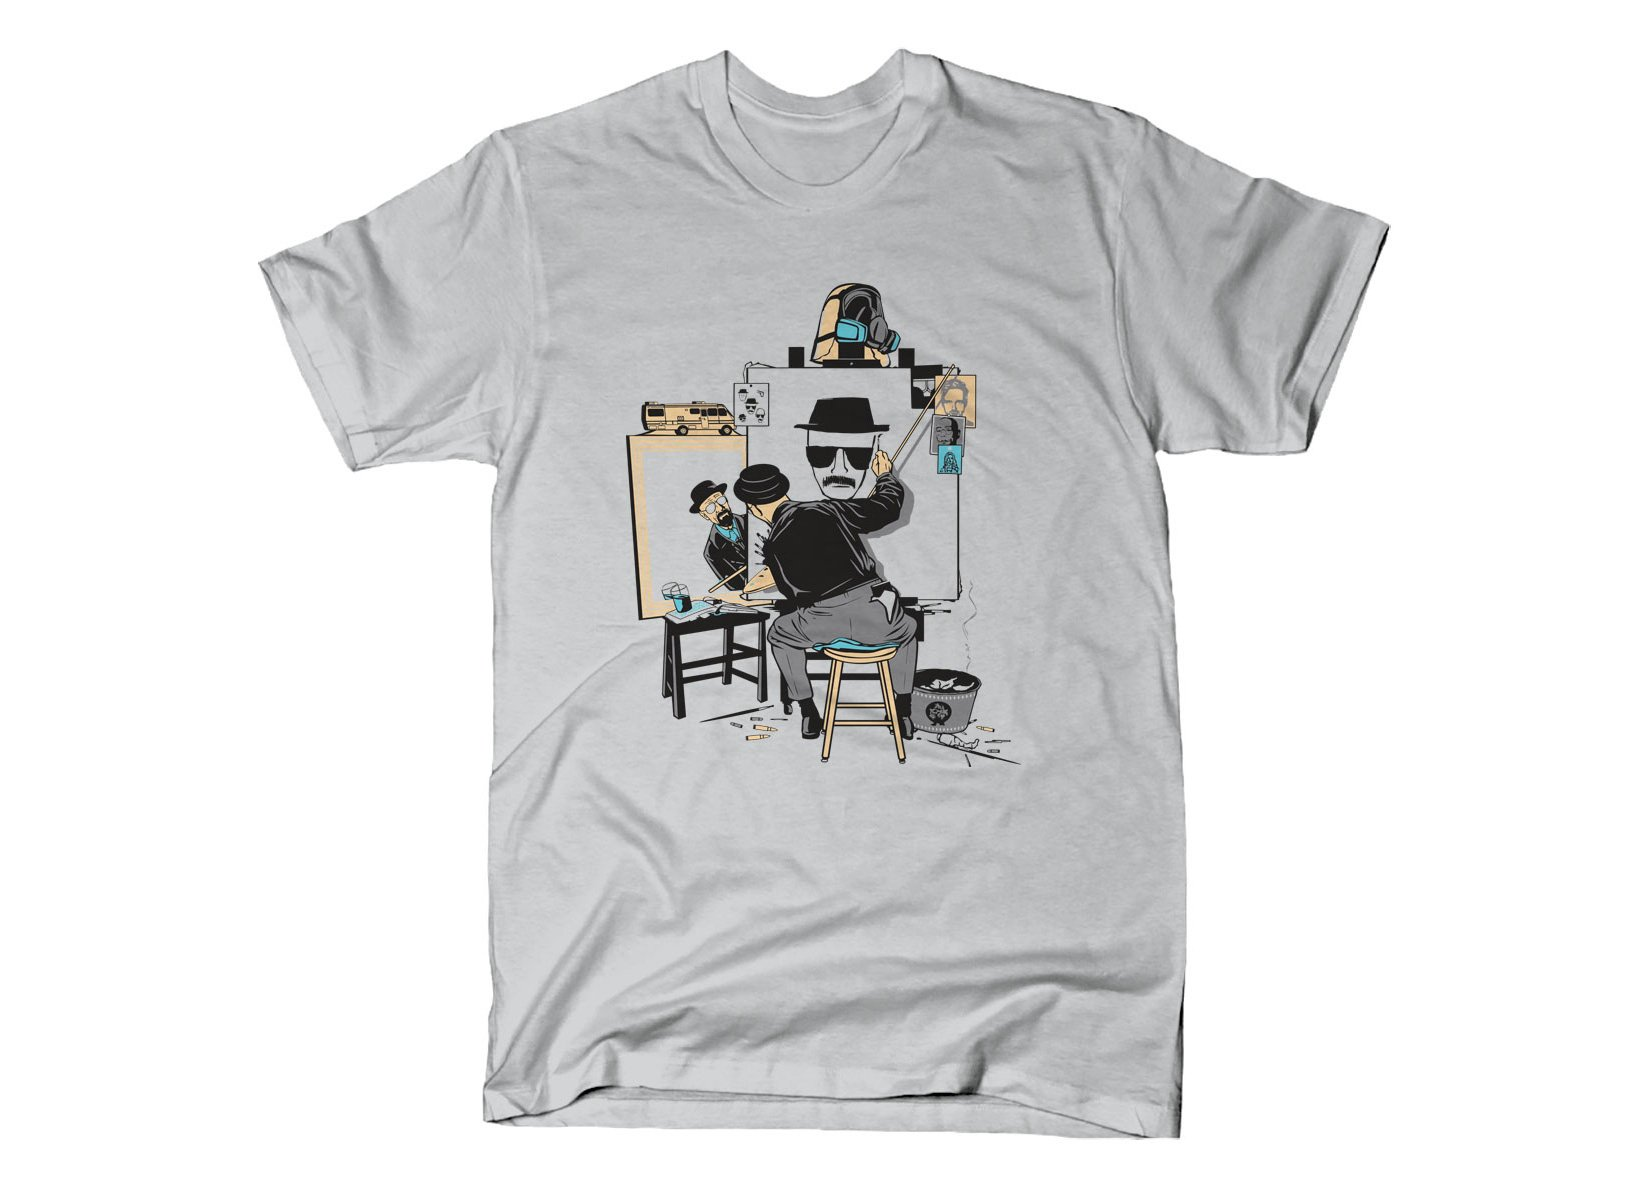 Heisenberg Self Portrait on Mens T-Shirt